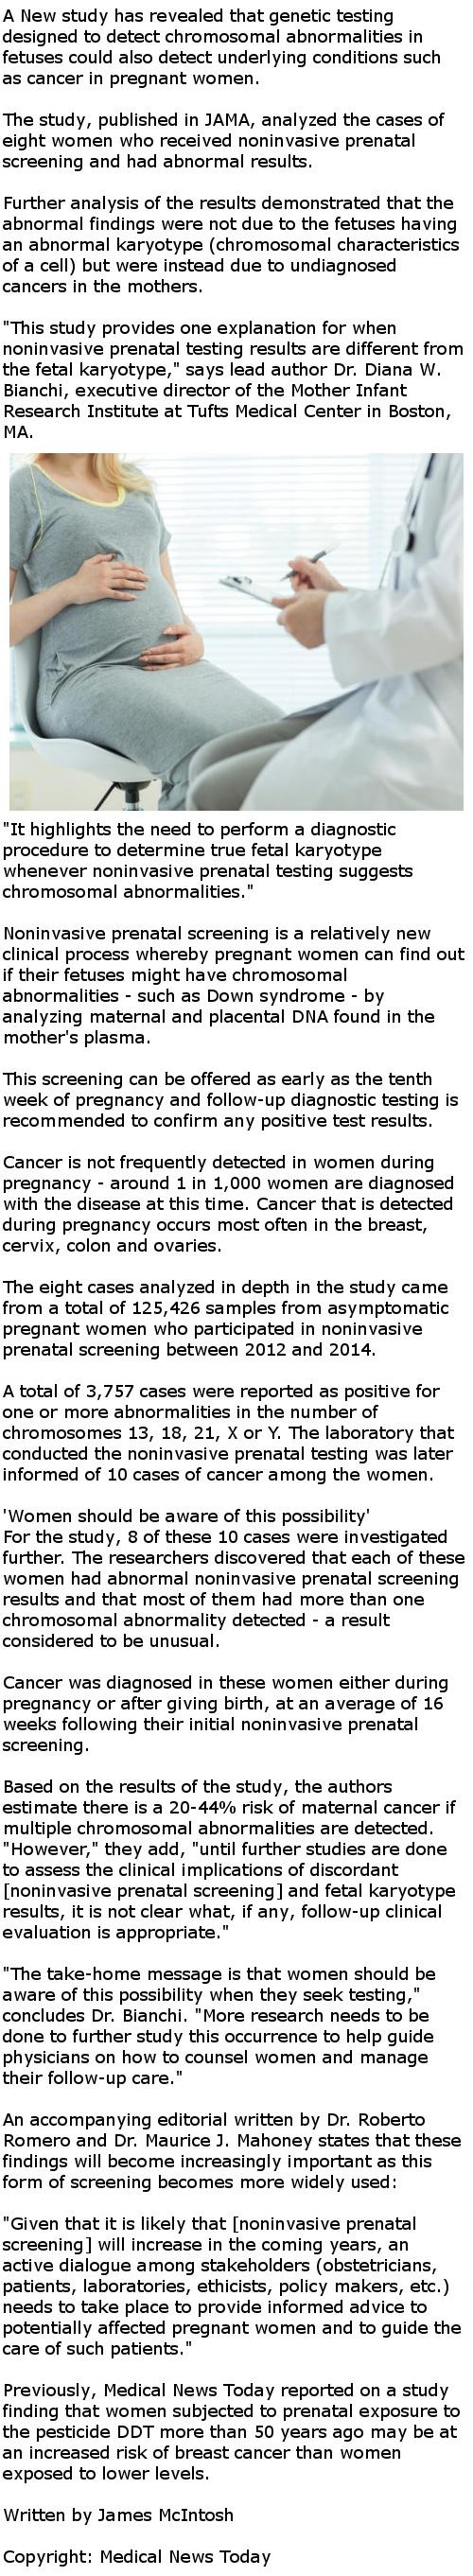 Maternal cancer could be detected during prenatal testing